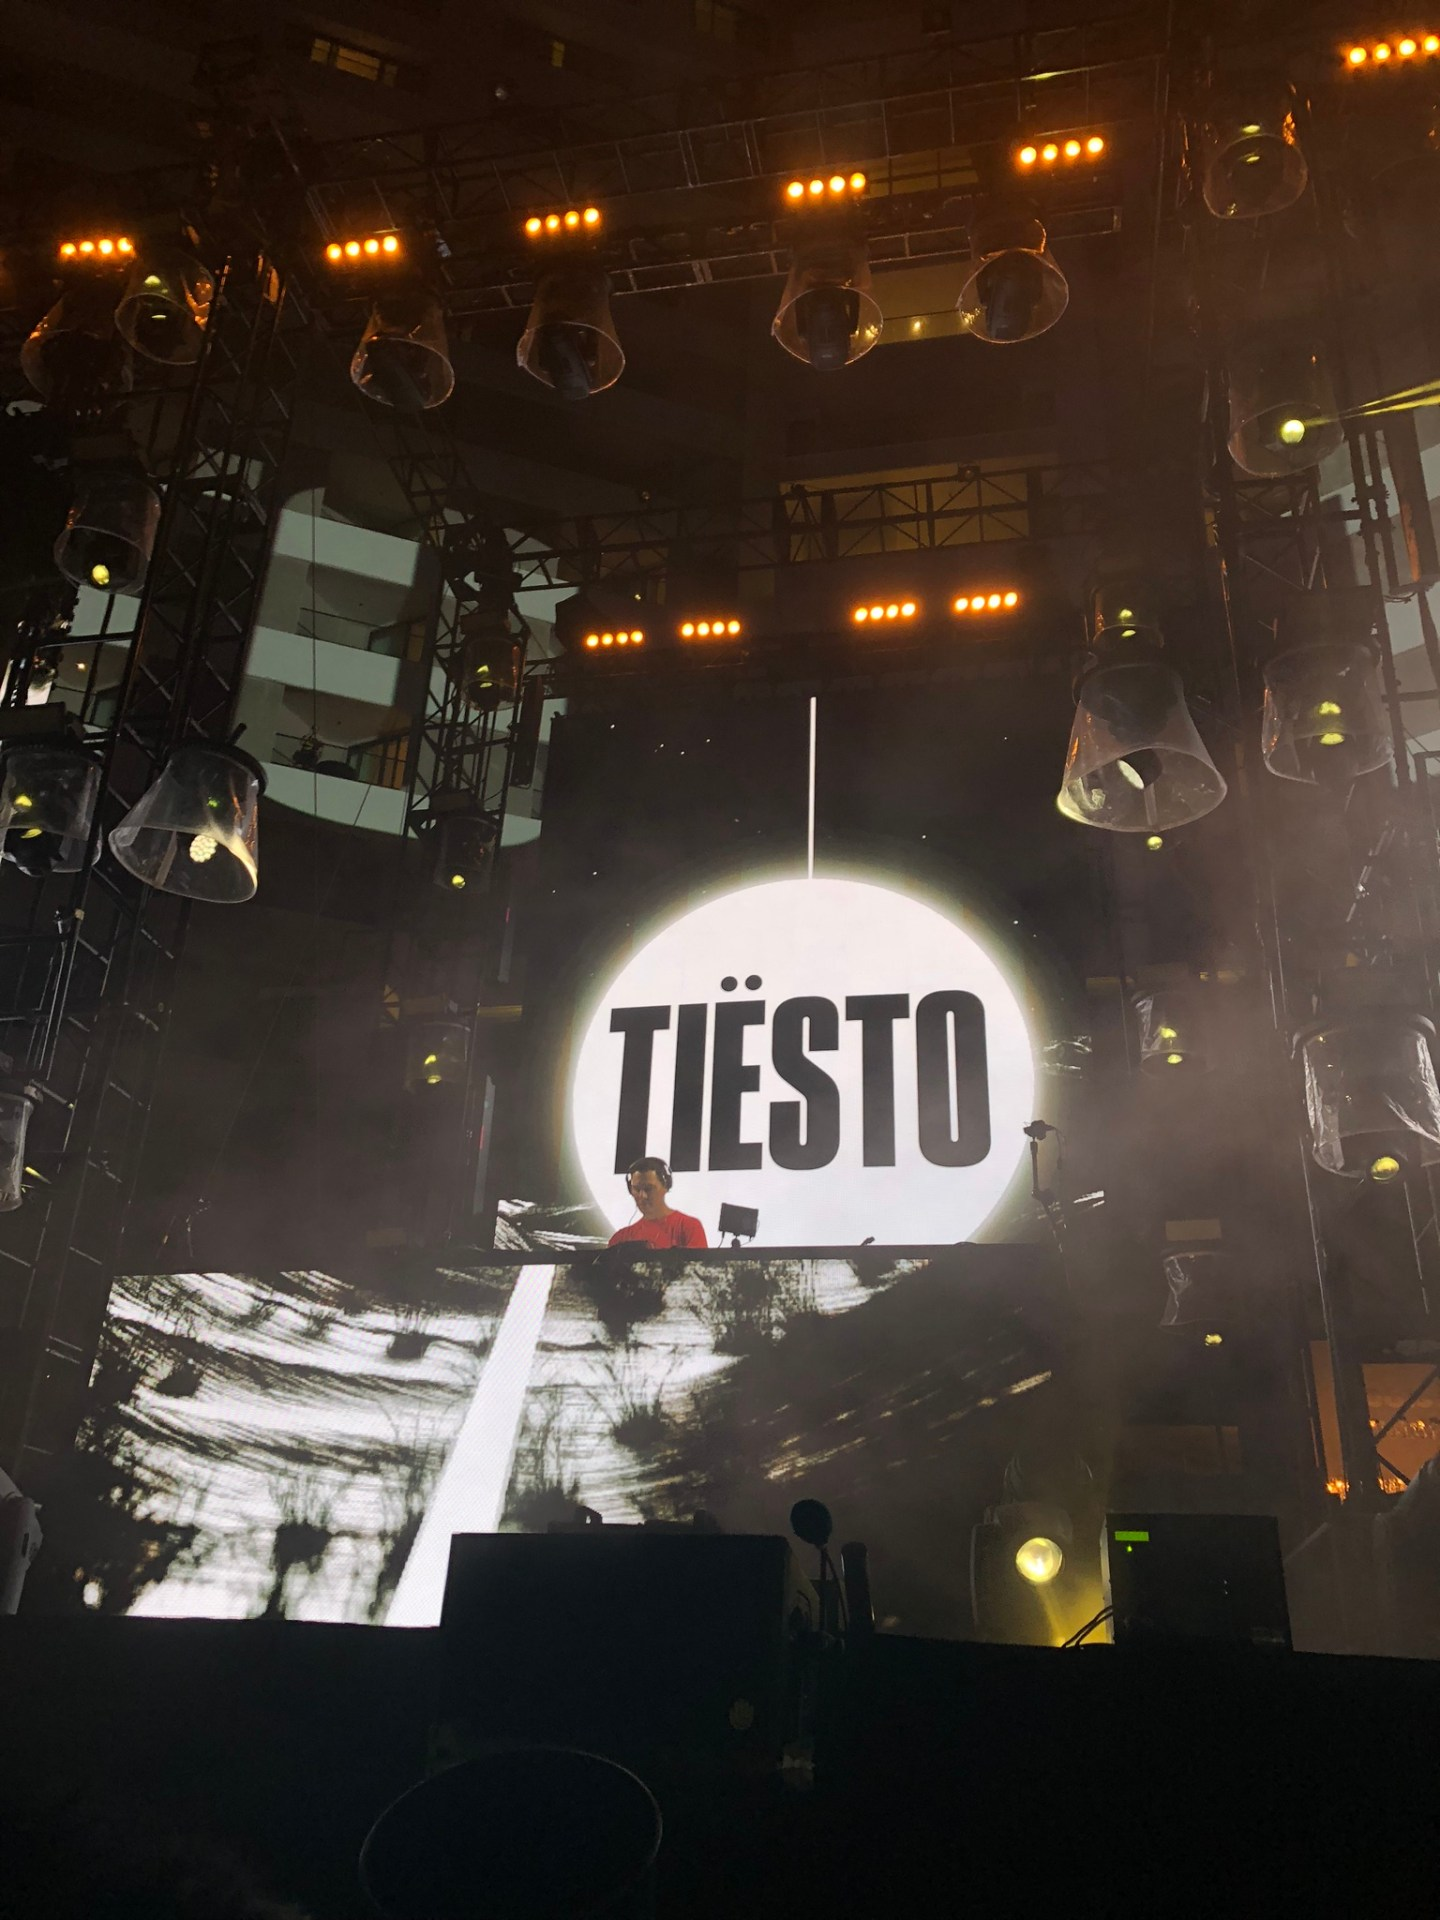 Tiesto at Spring Break in Cancun, Mexico